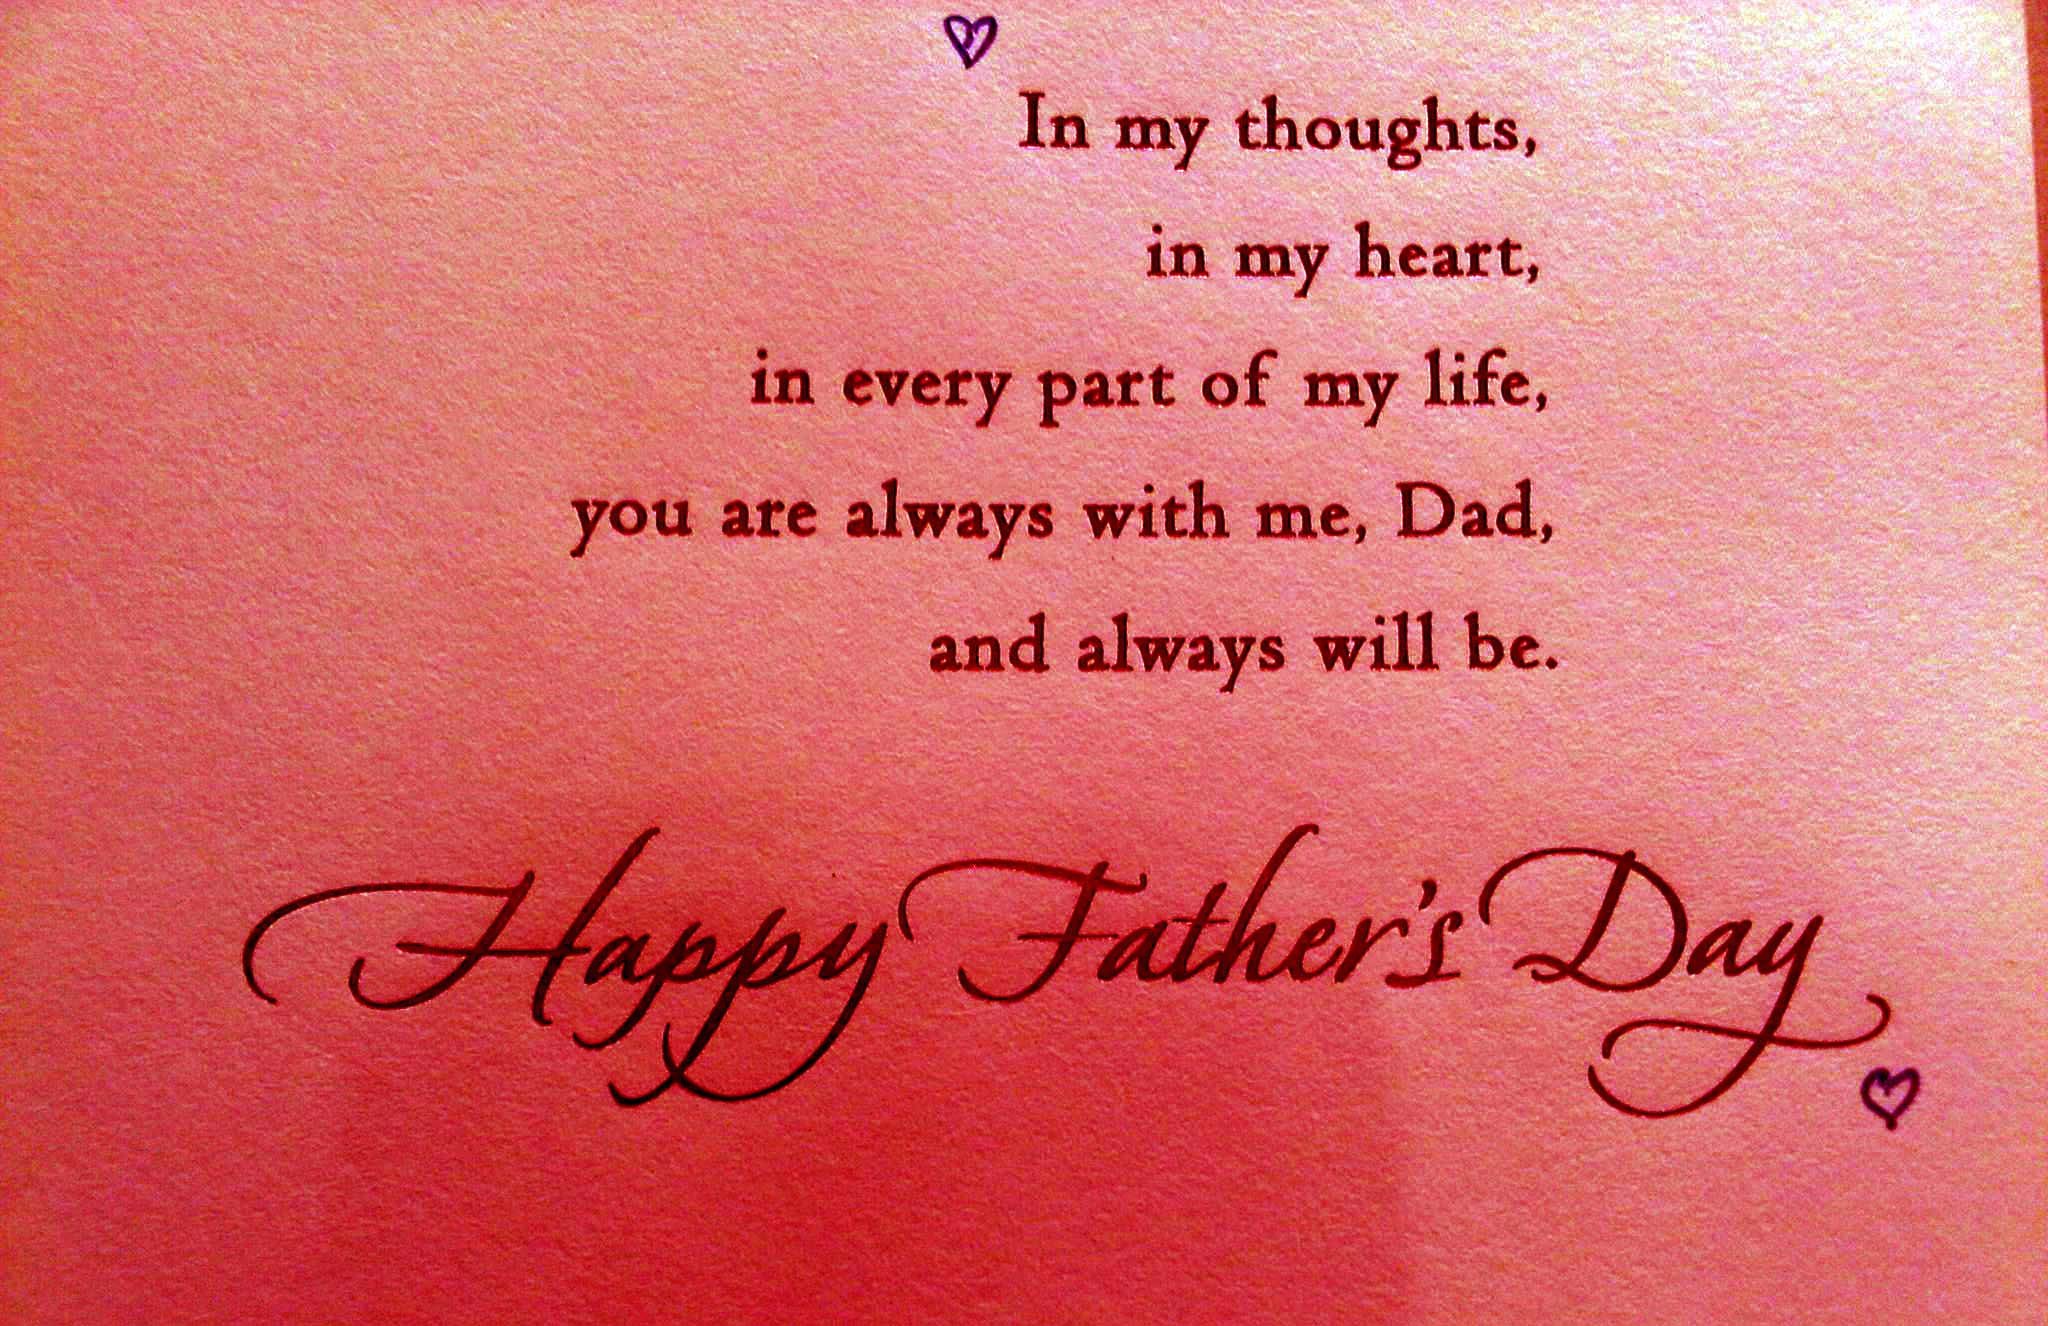 Fathers Day Images Hd Free Download